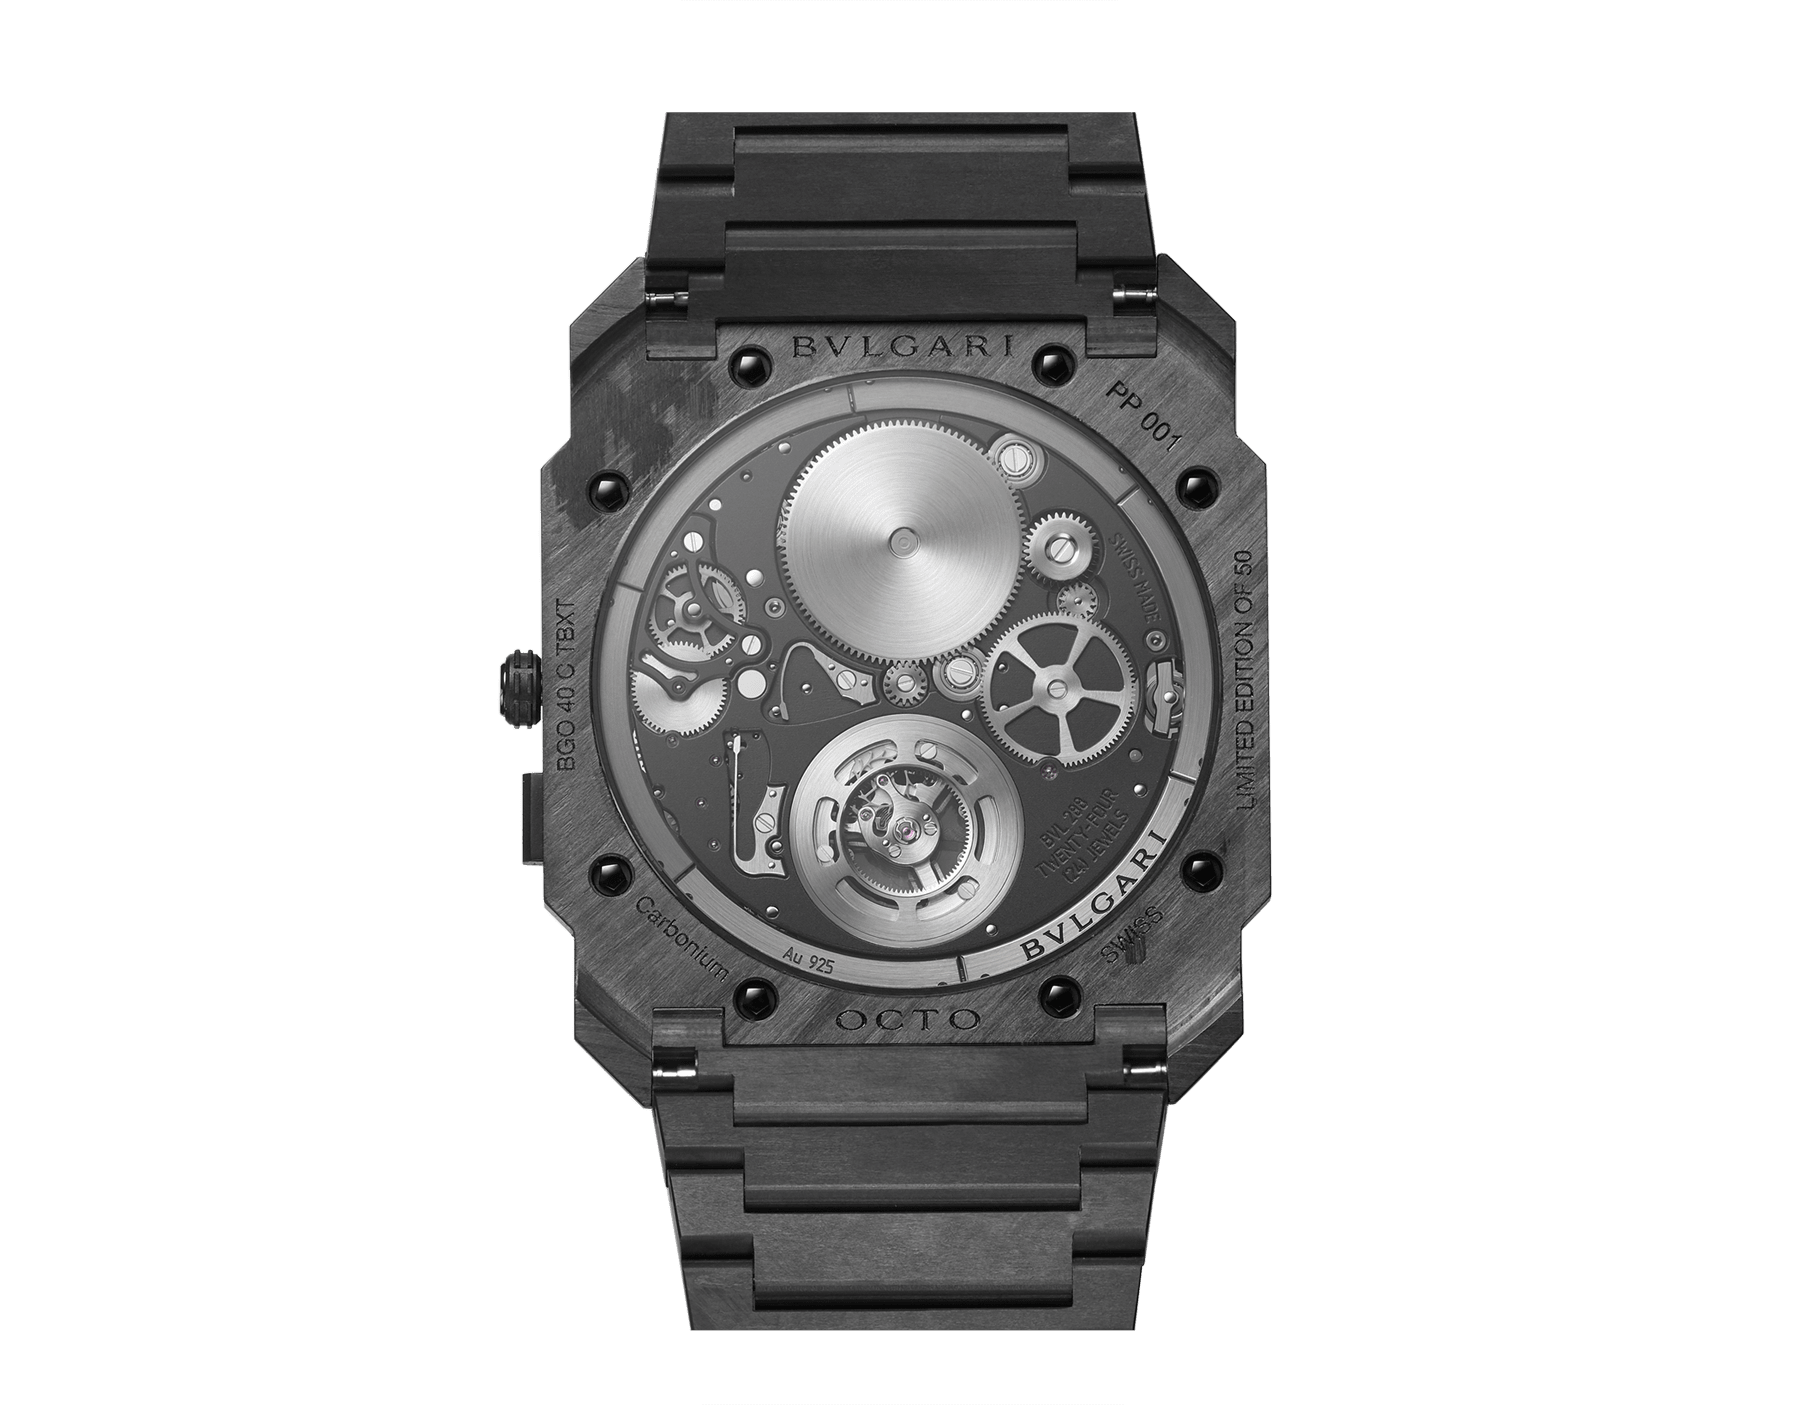 Octo Finissimo Tourbillon Automatic watch with mechanical manufacture movement, ultra-thin flying tourbillon, special ball bearing system, ultra-thin case and bracelet in carbon and skeletonized dial 103072 image 3